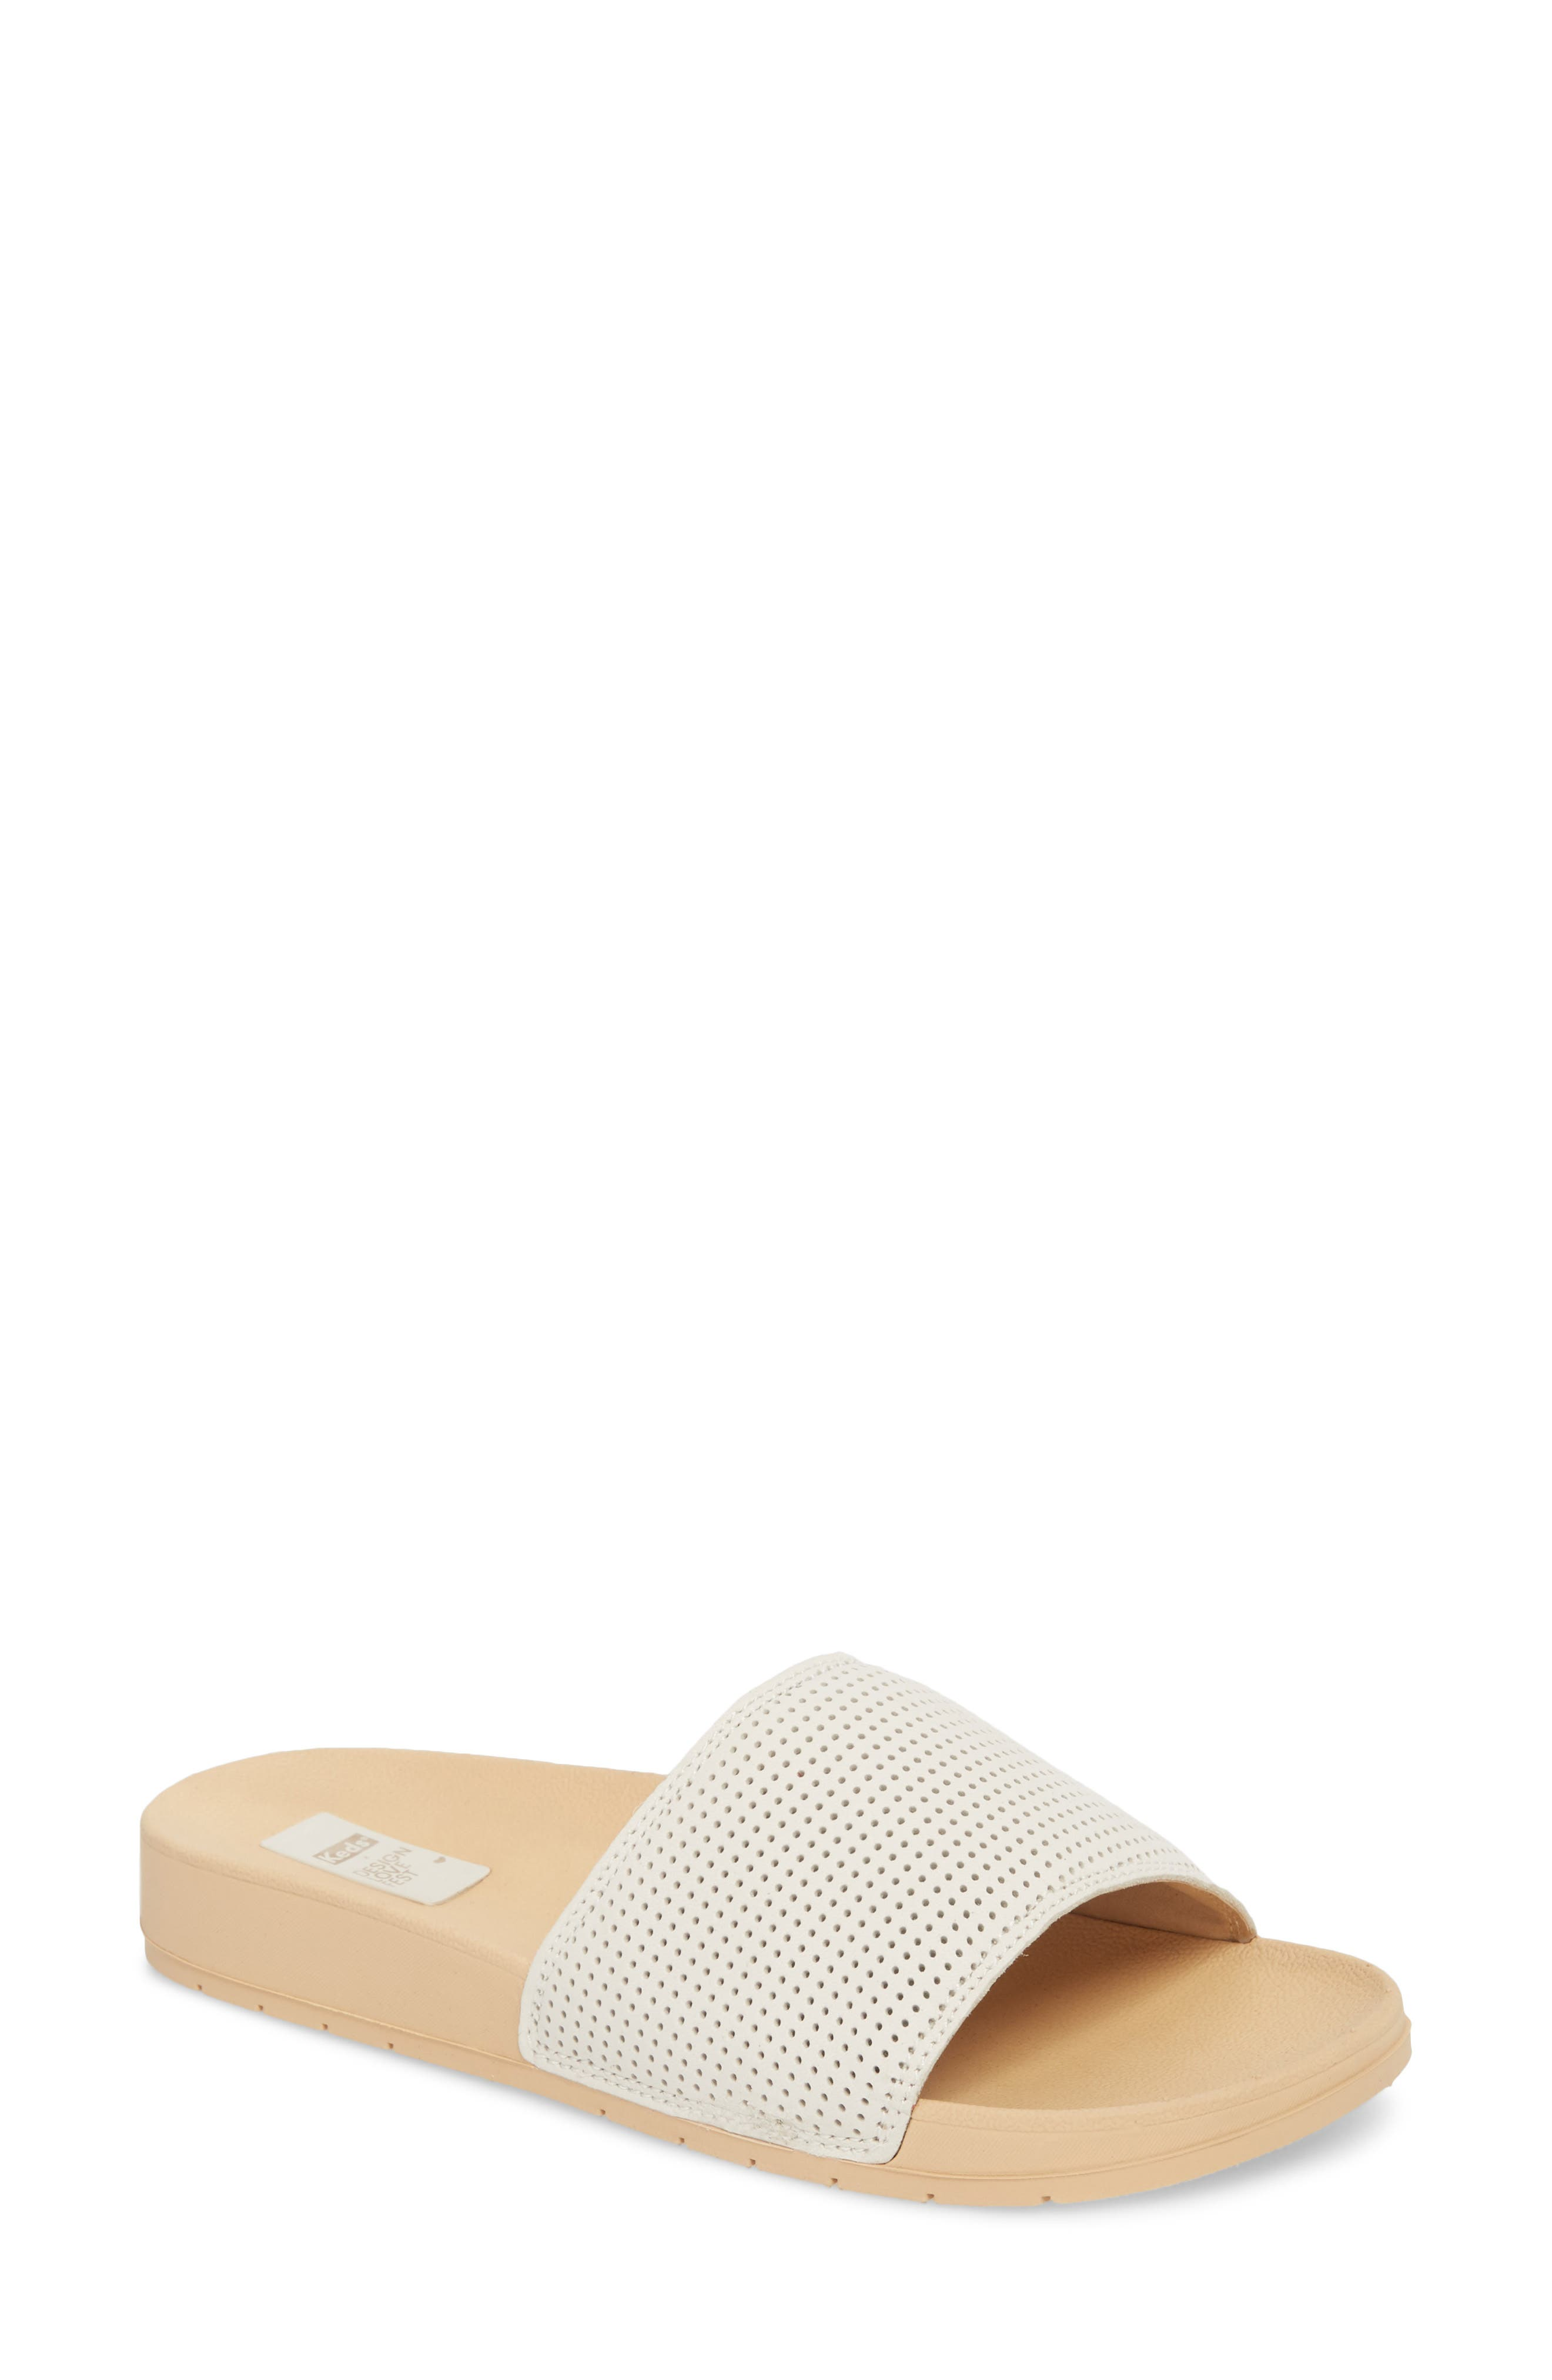 x Designlovefest Bliss Slide Sandal,                         Main,                         color, CREAM/ TAN